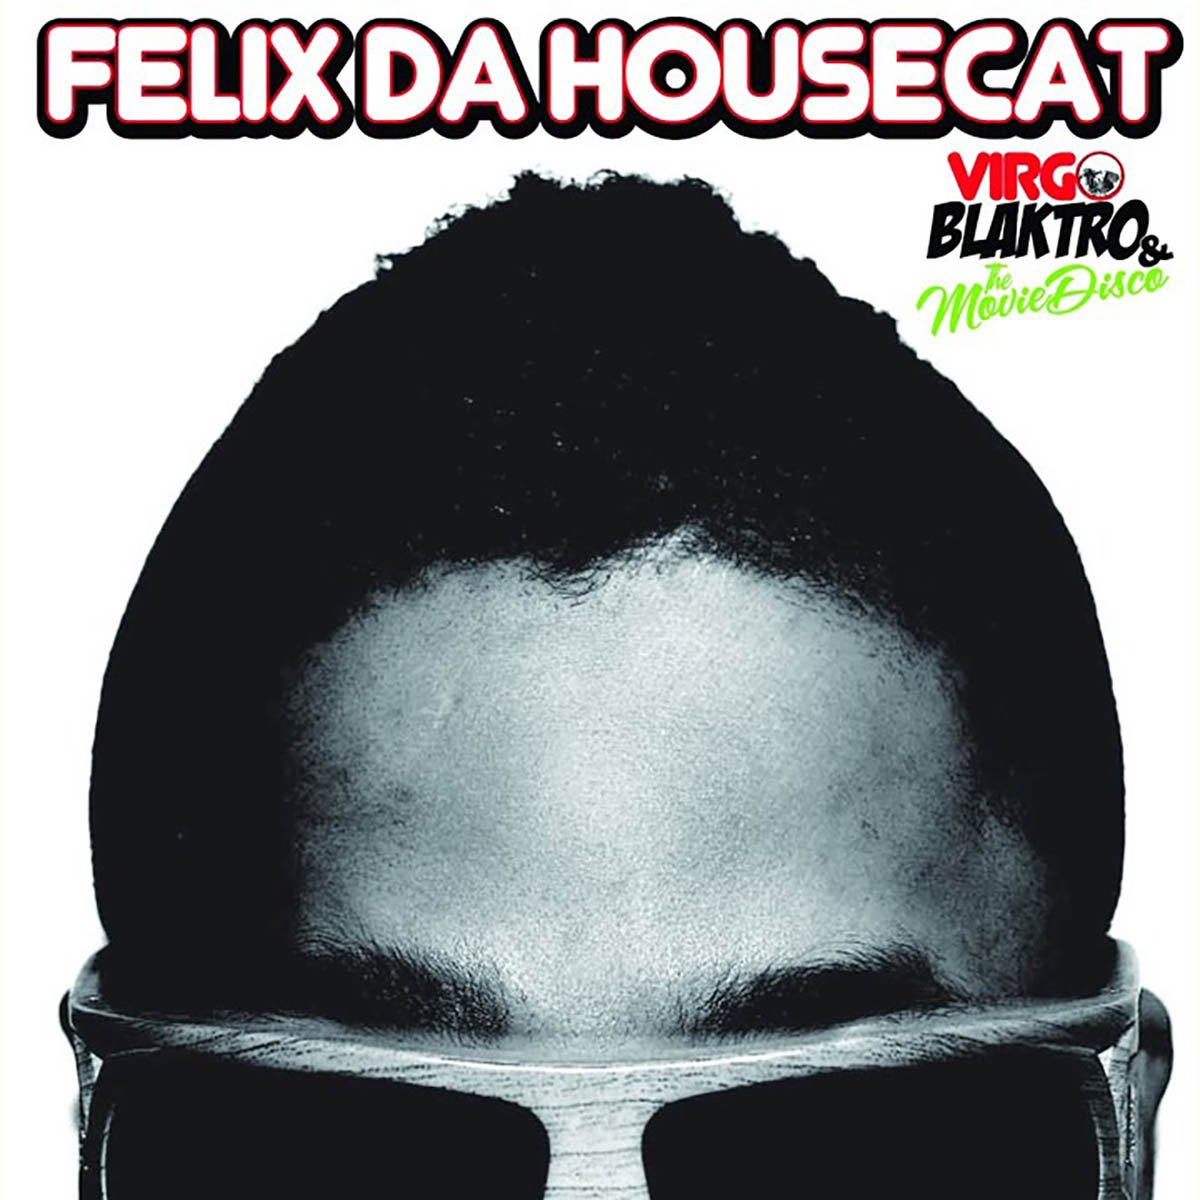 Felix Da Housecat, Virgo Blaktro & the MovieDisco